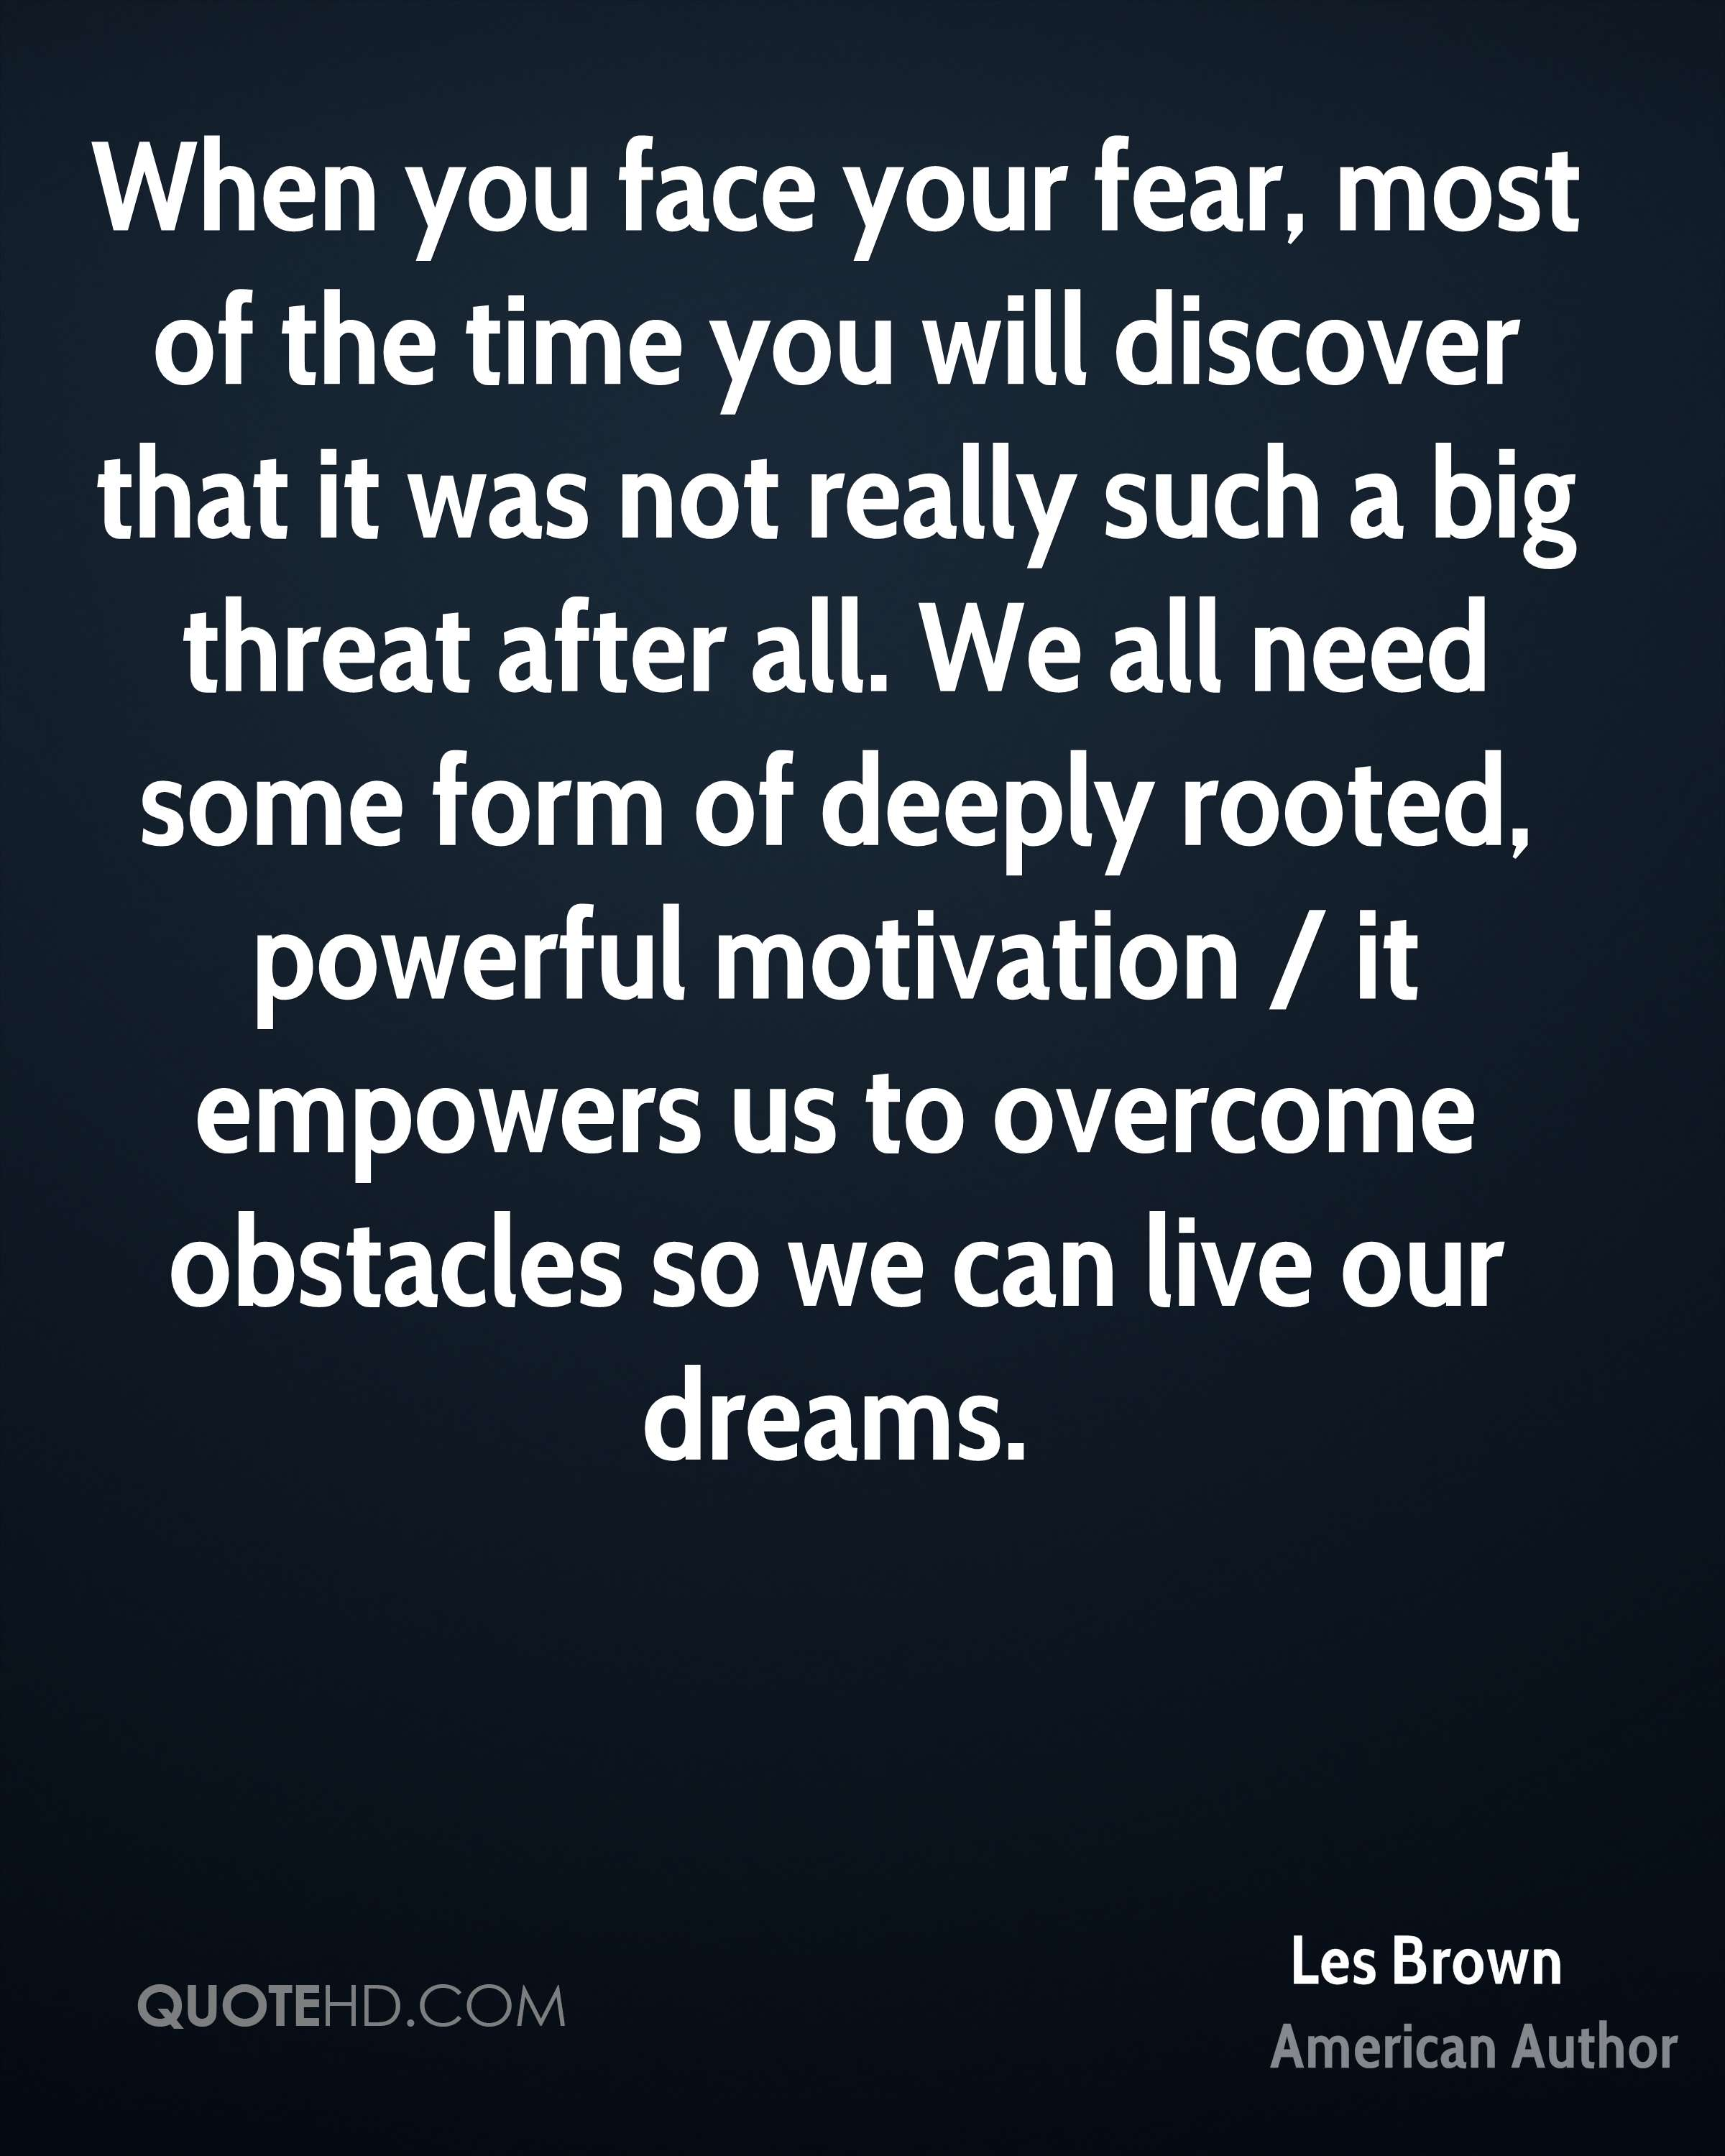 Les Brown Quotes Les Brown Quotes  Quotehd